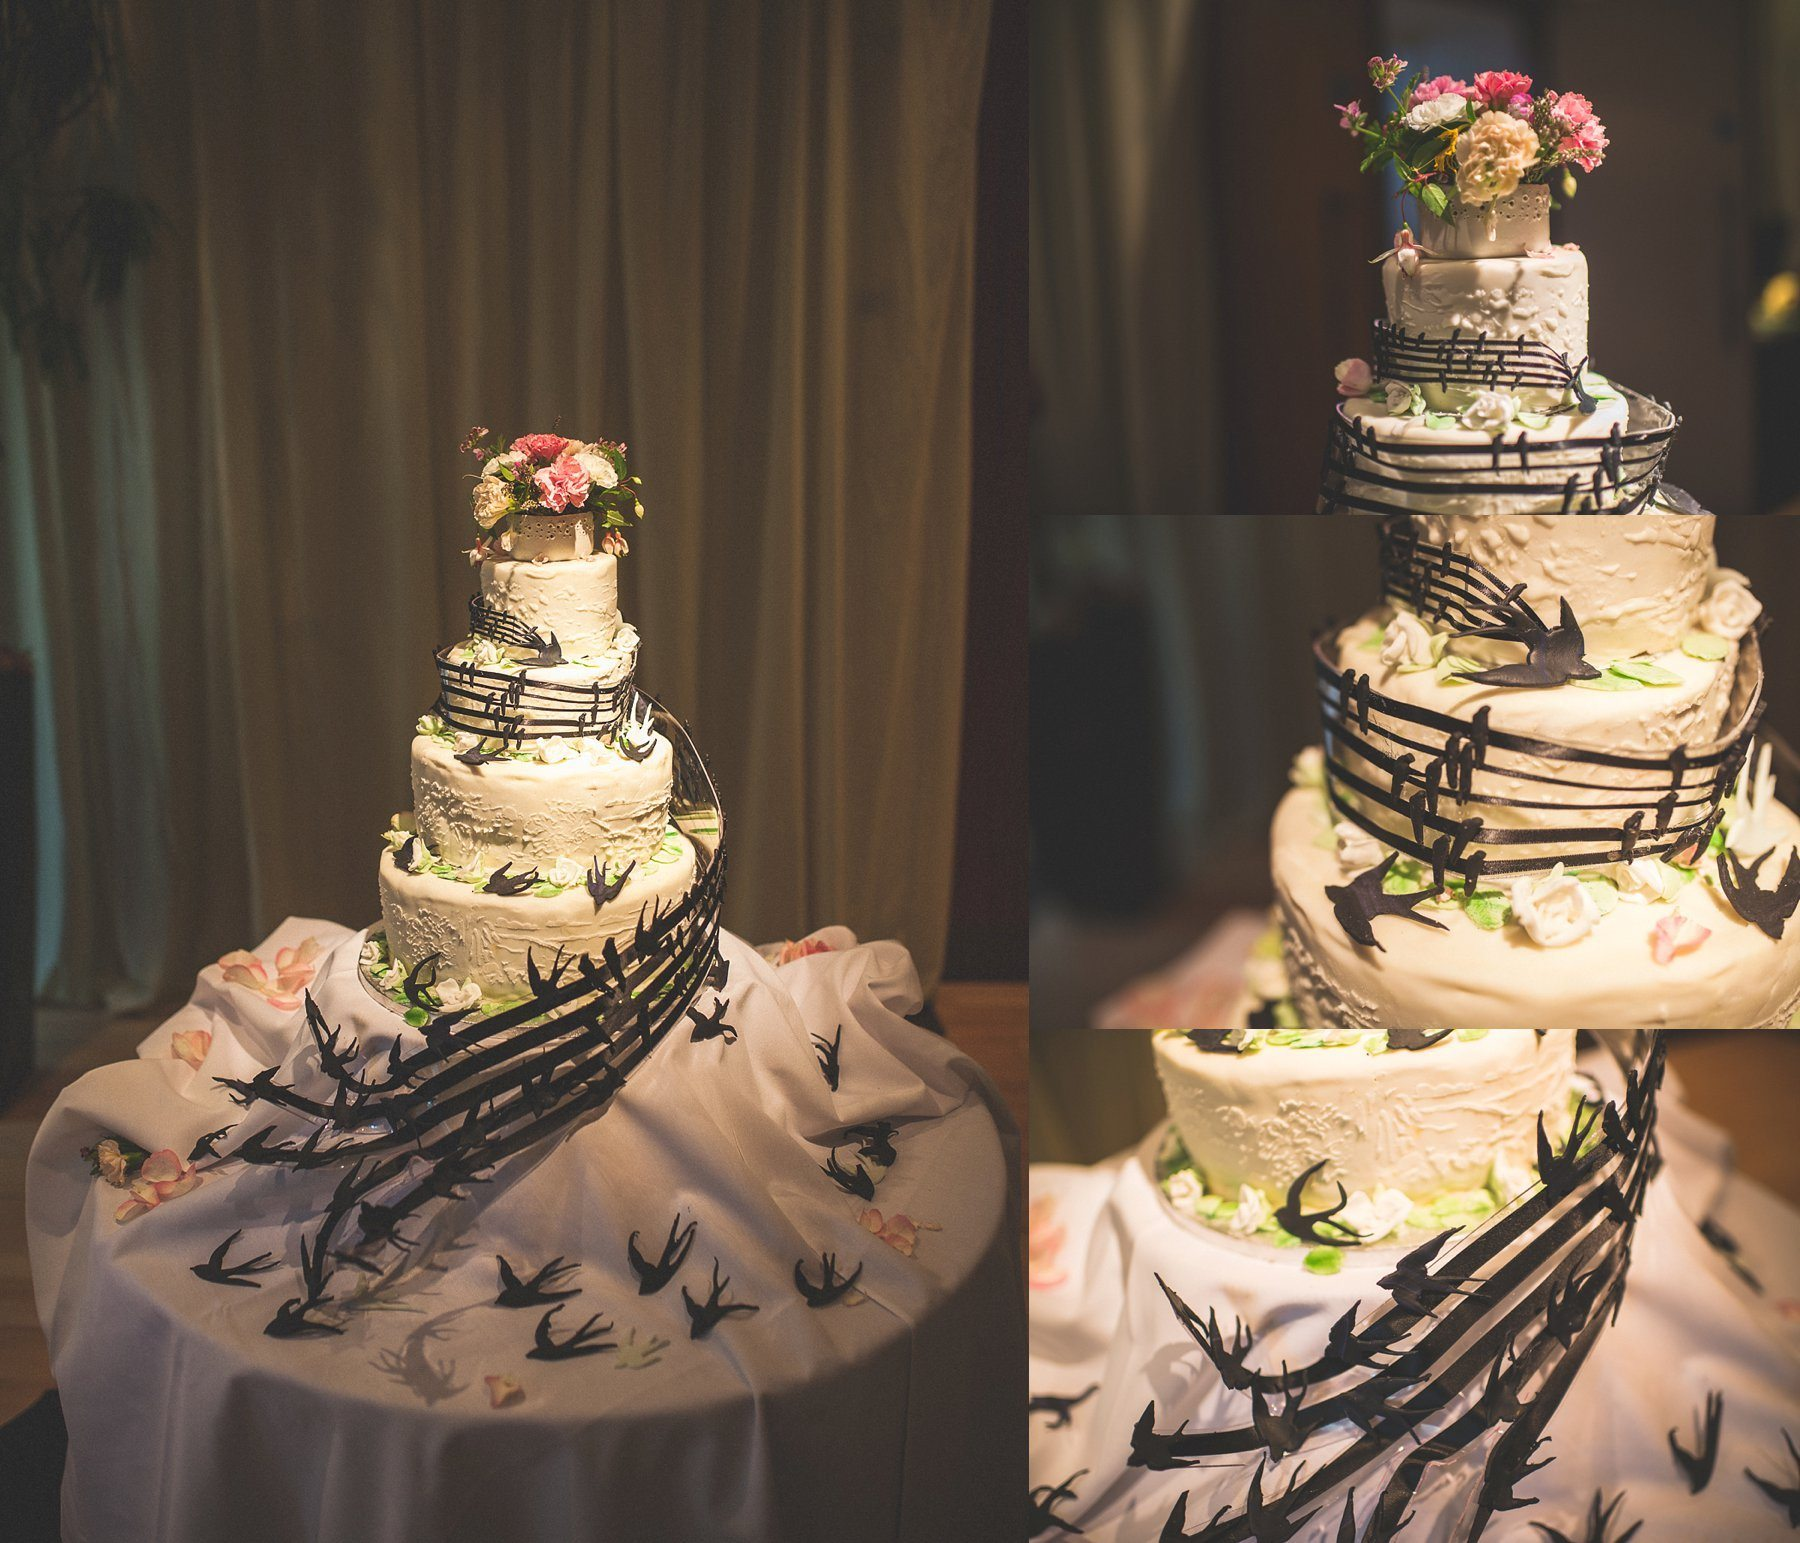 Glamorous Music Themed Chelsea Wedding Cake